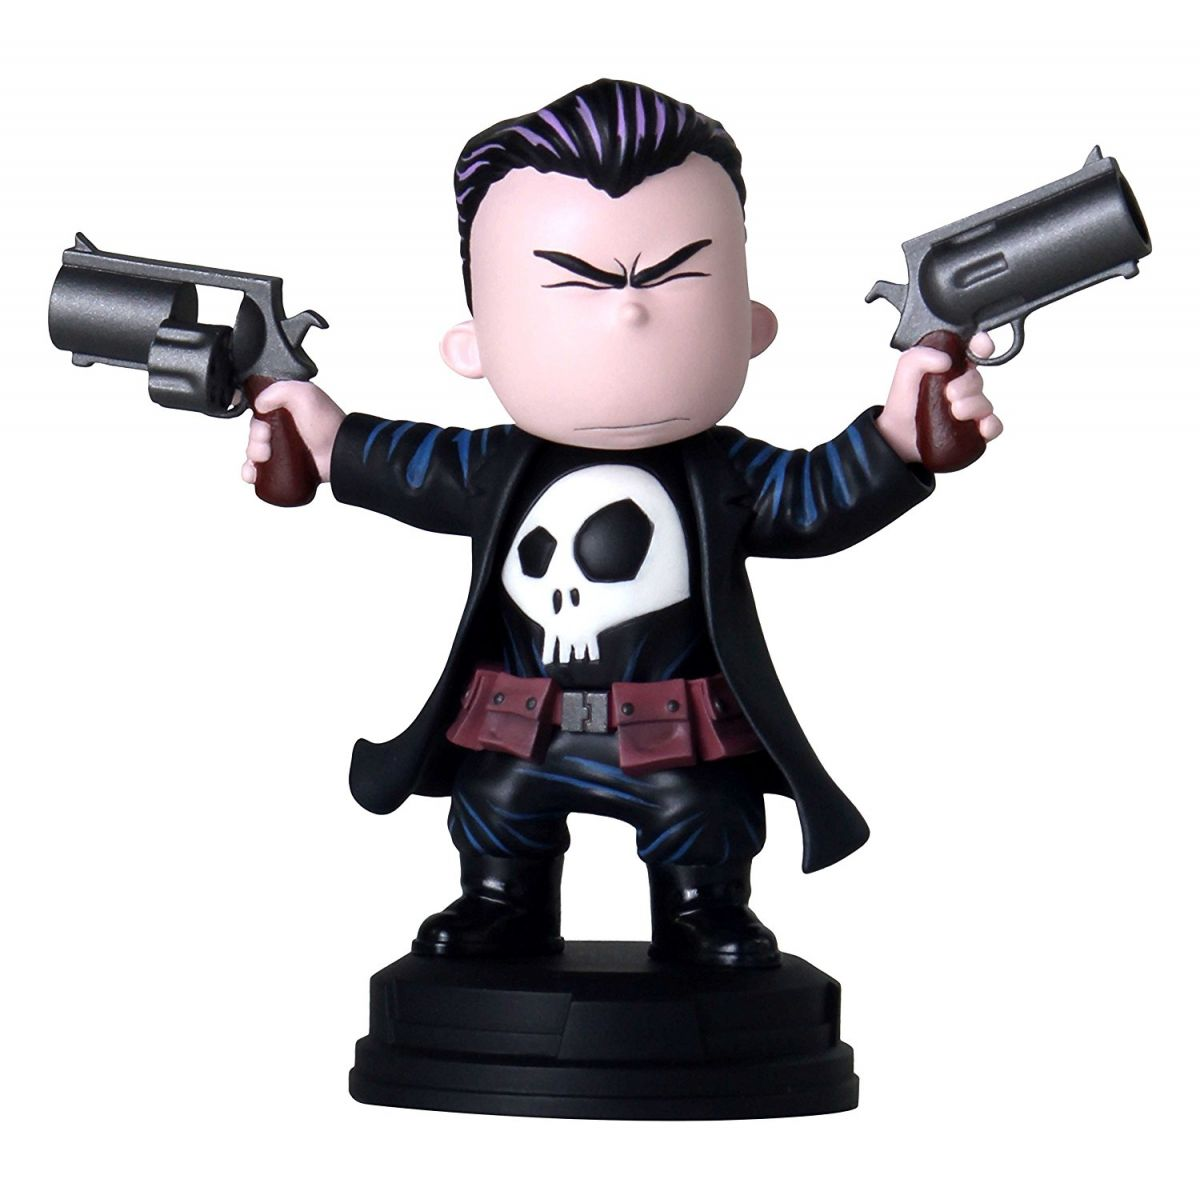 Estátua Justiceiro (Punisher): Marvel Animated - Gentle Giant Ltd